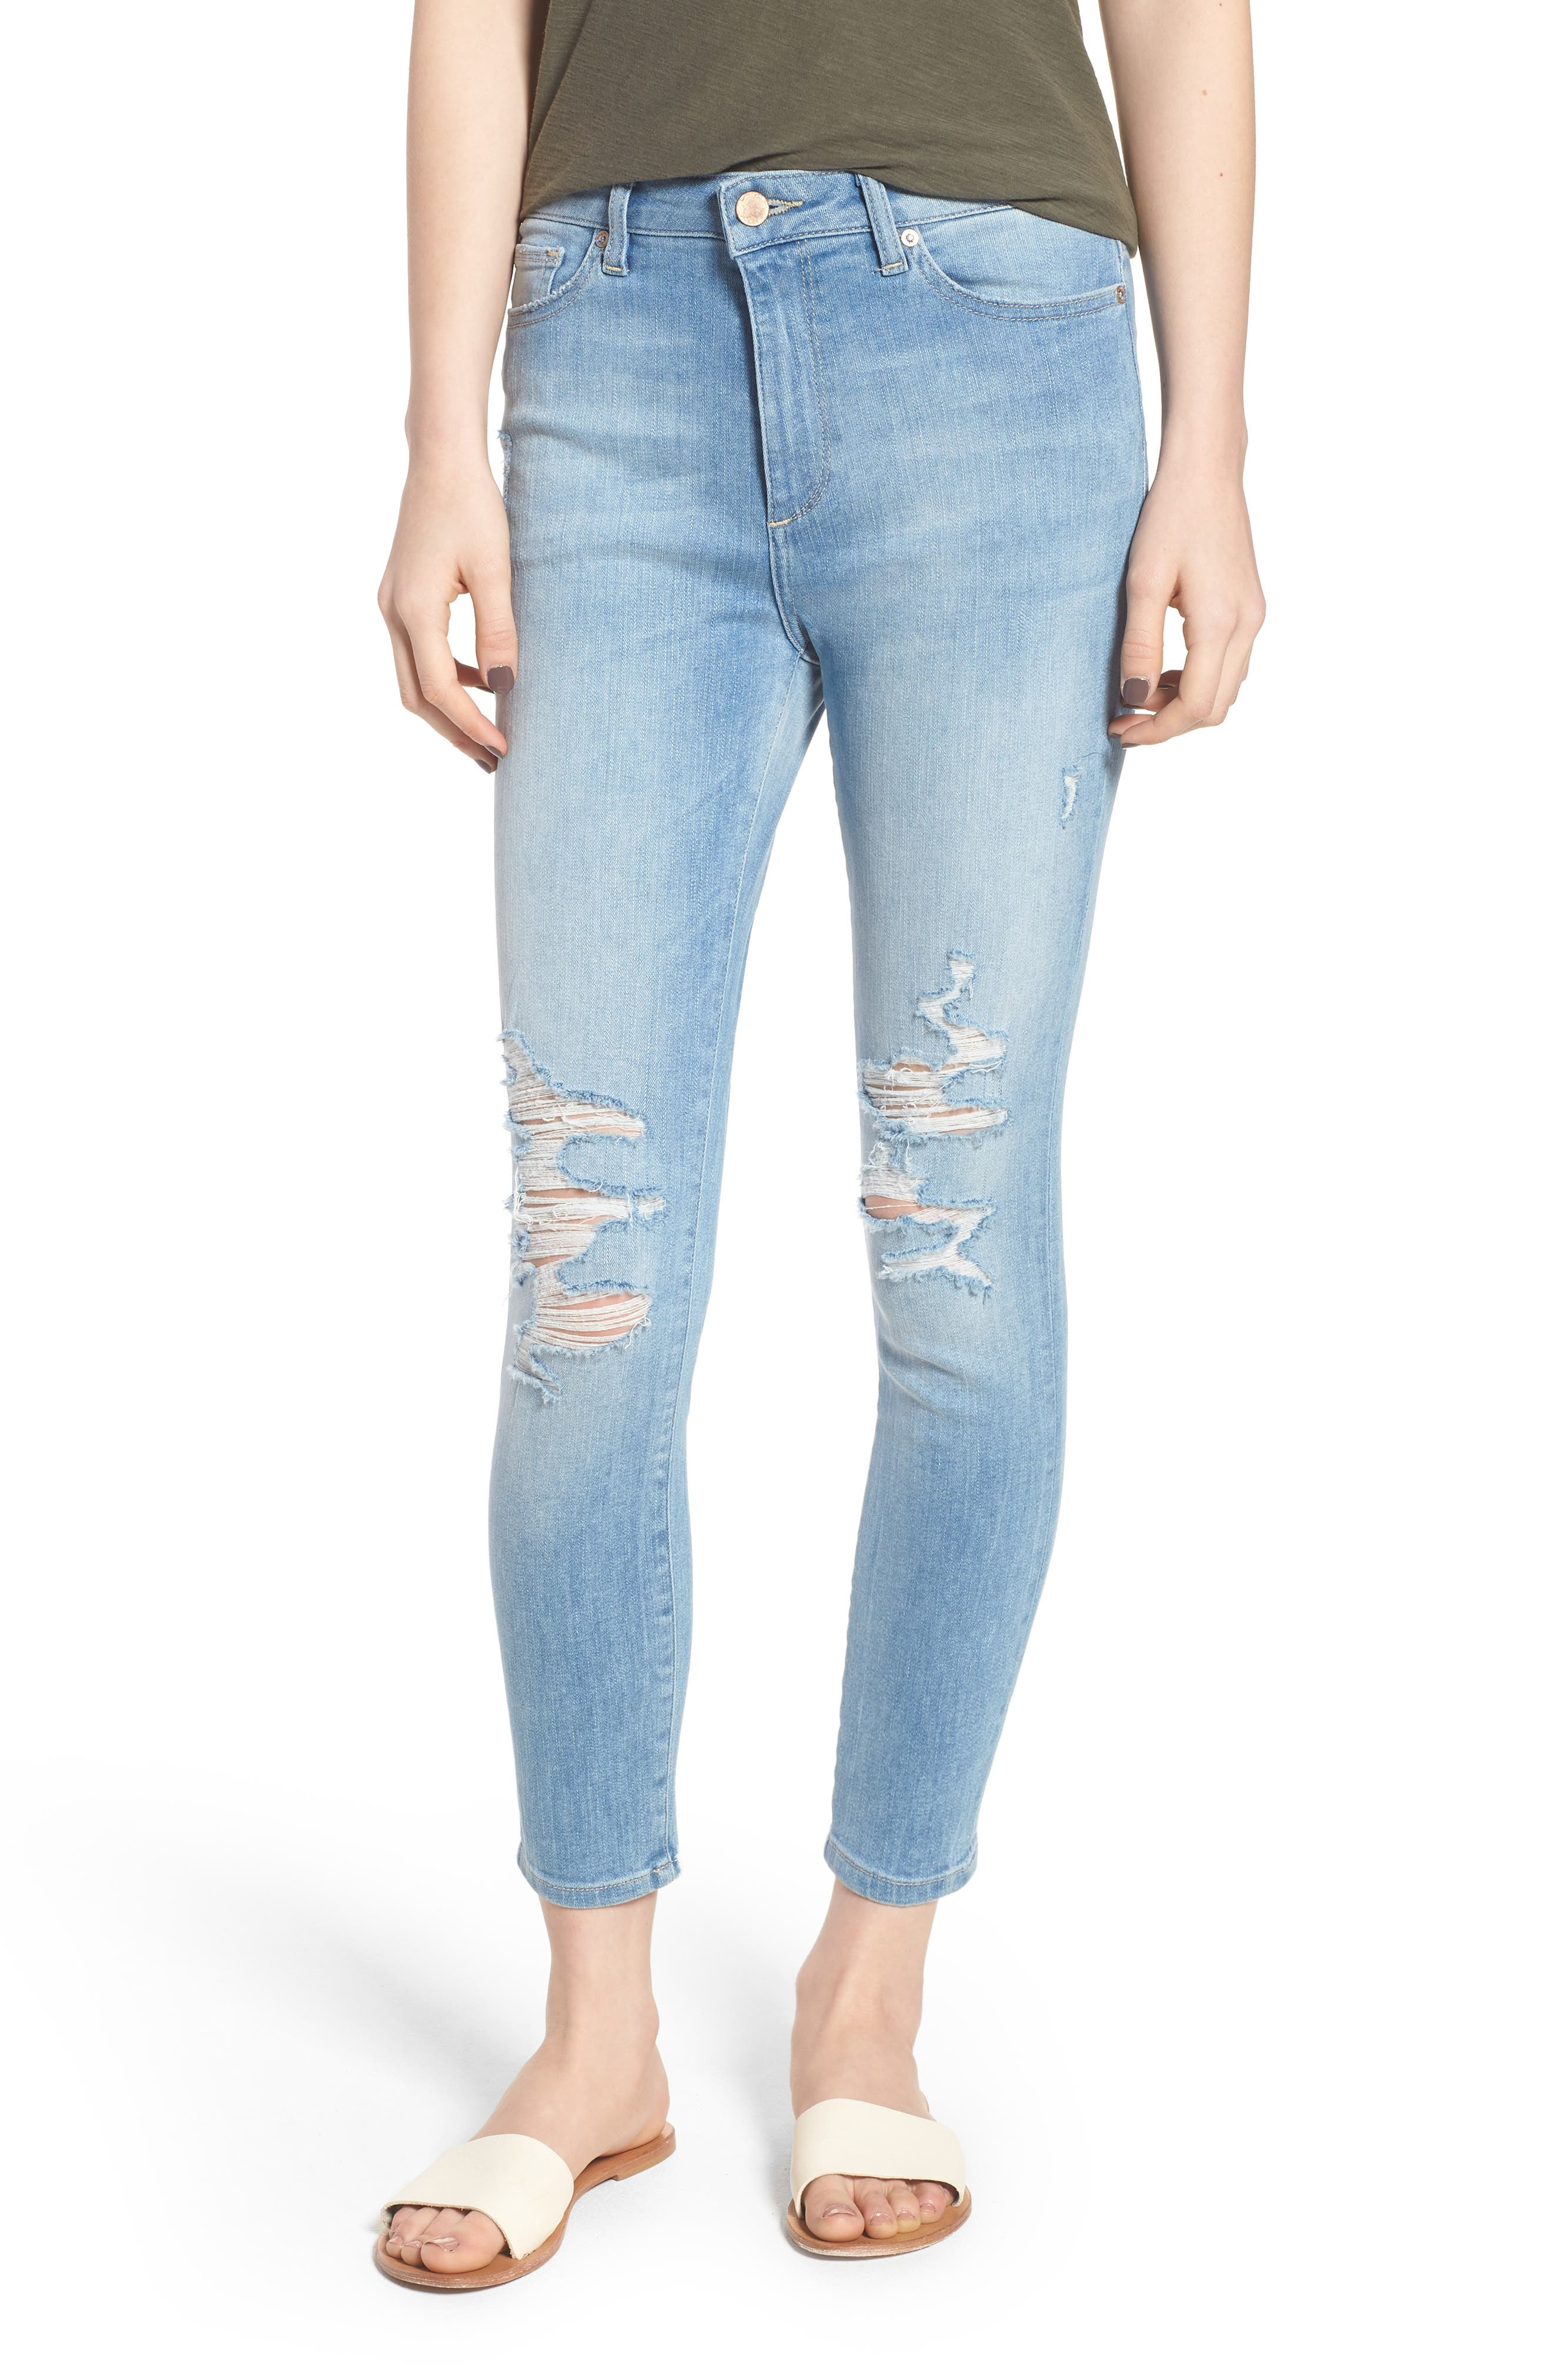 Main Image - DL1961 Chrissy Trimtone Ripped High Waist Skinny Jeans (Walker)